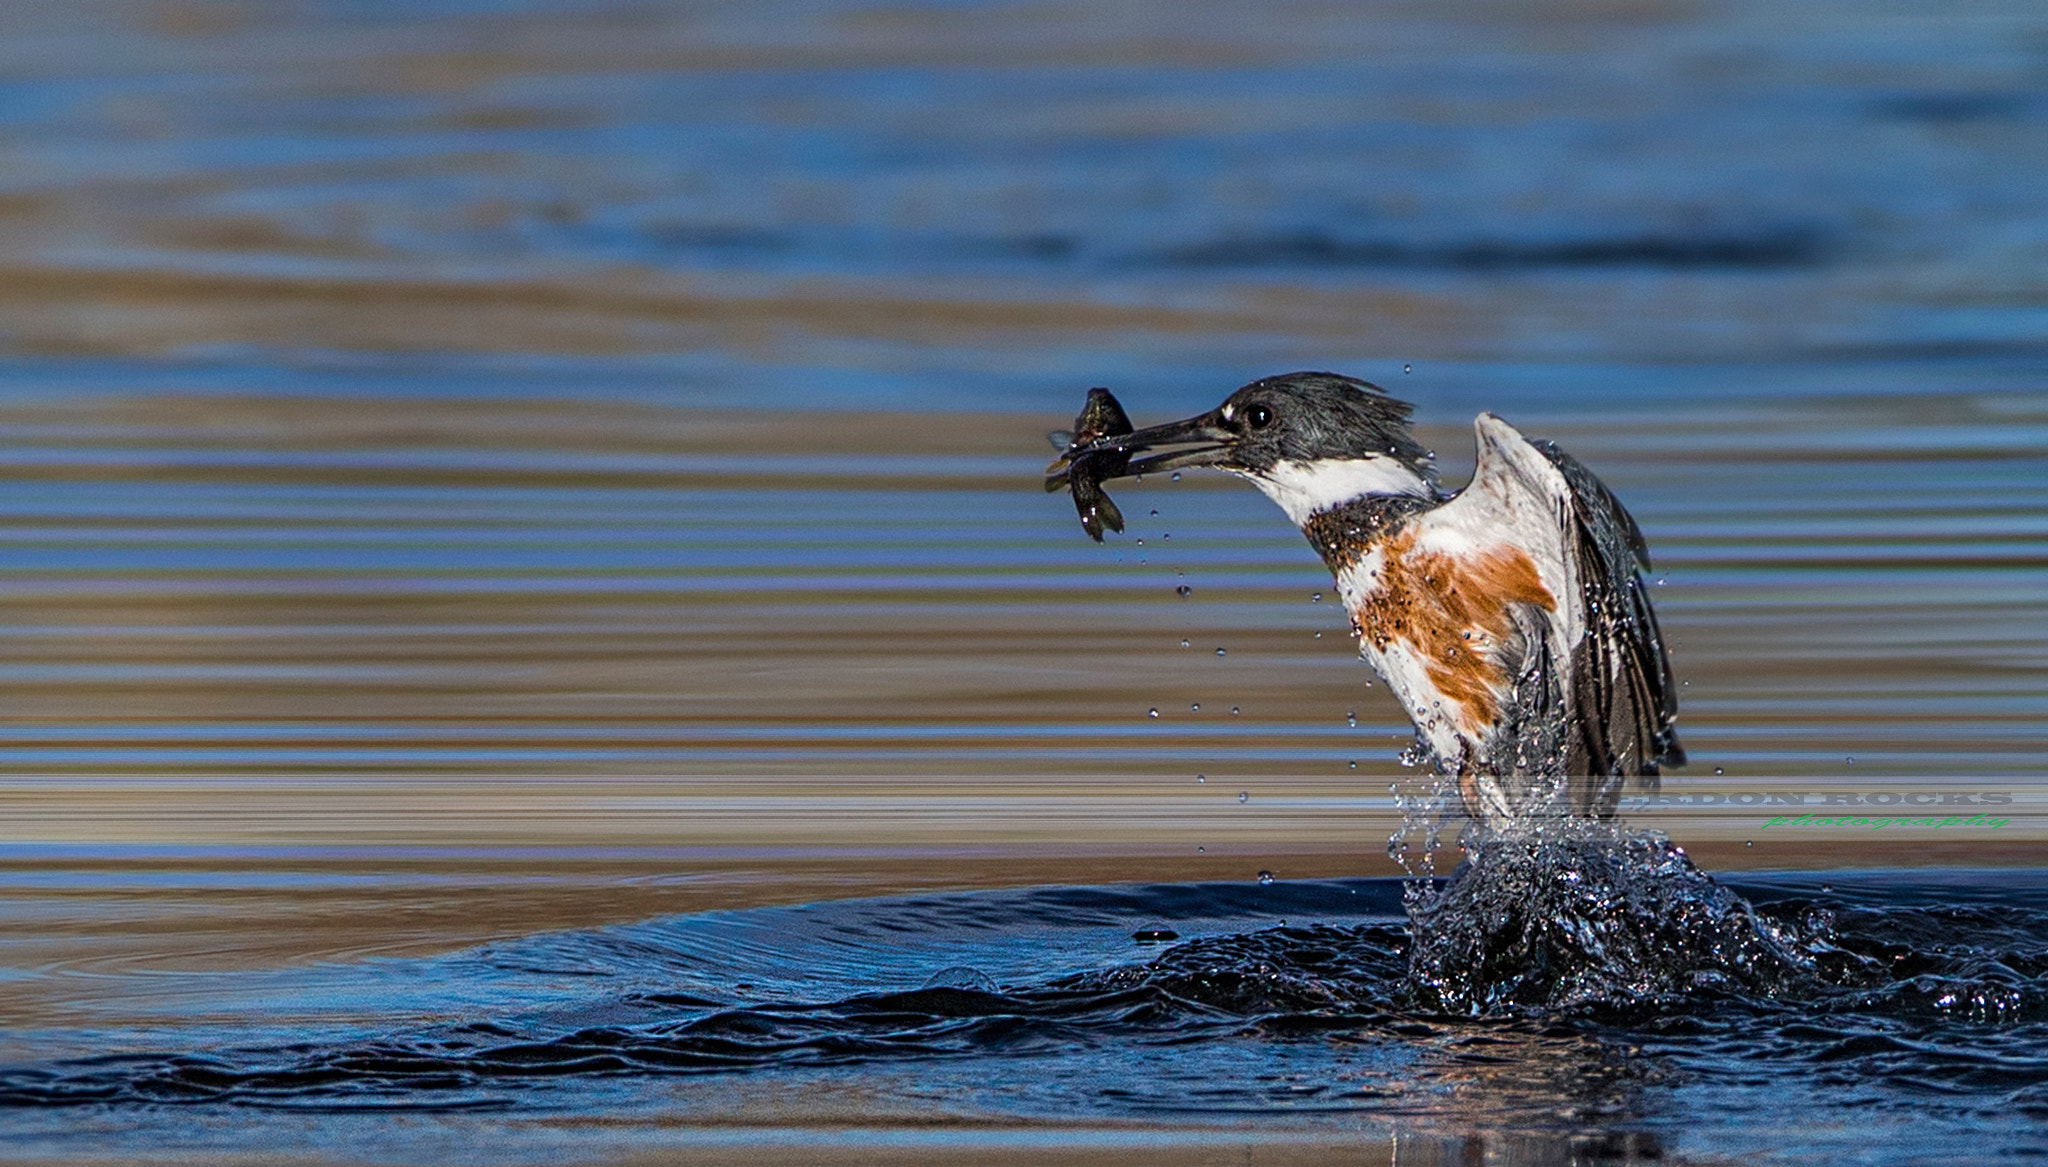 Photograph Fishing torpedo by VERDON ROCKS on 500px